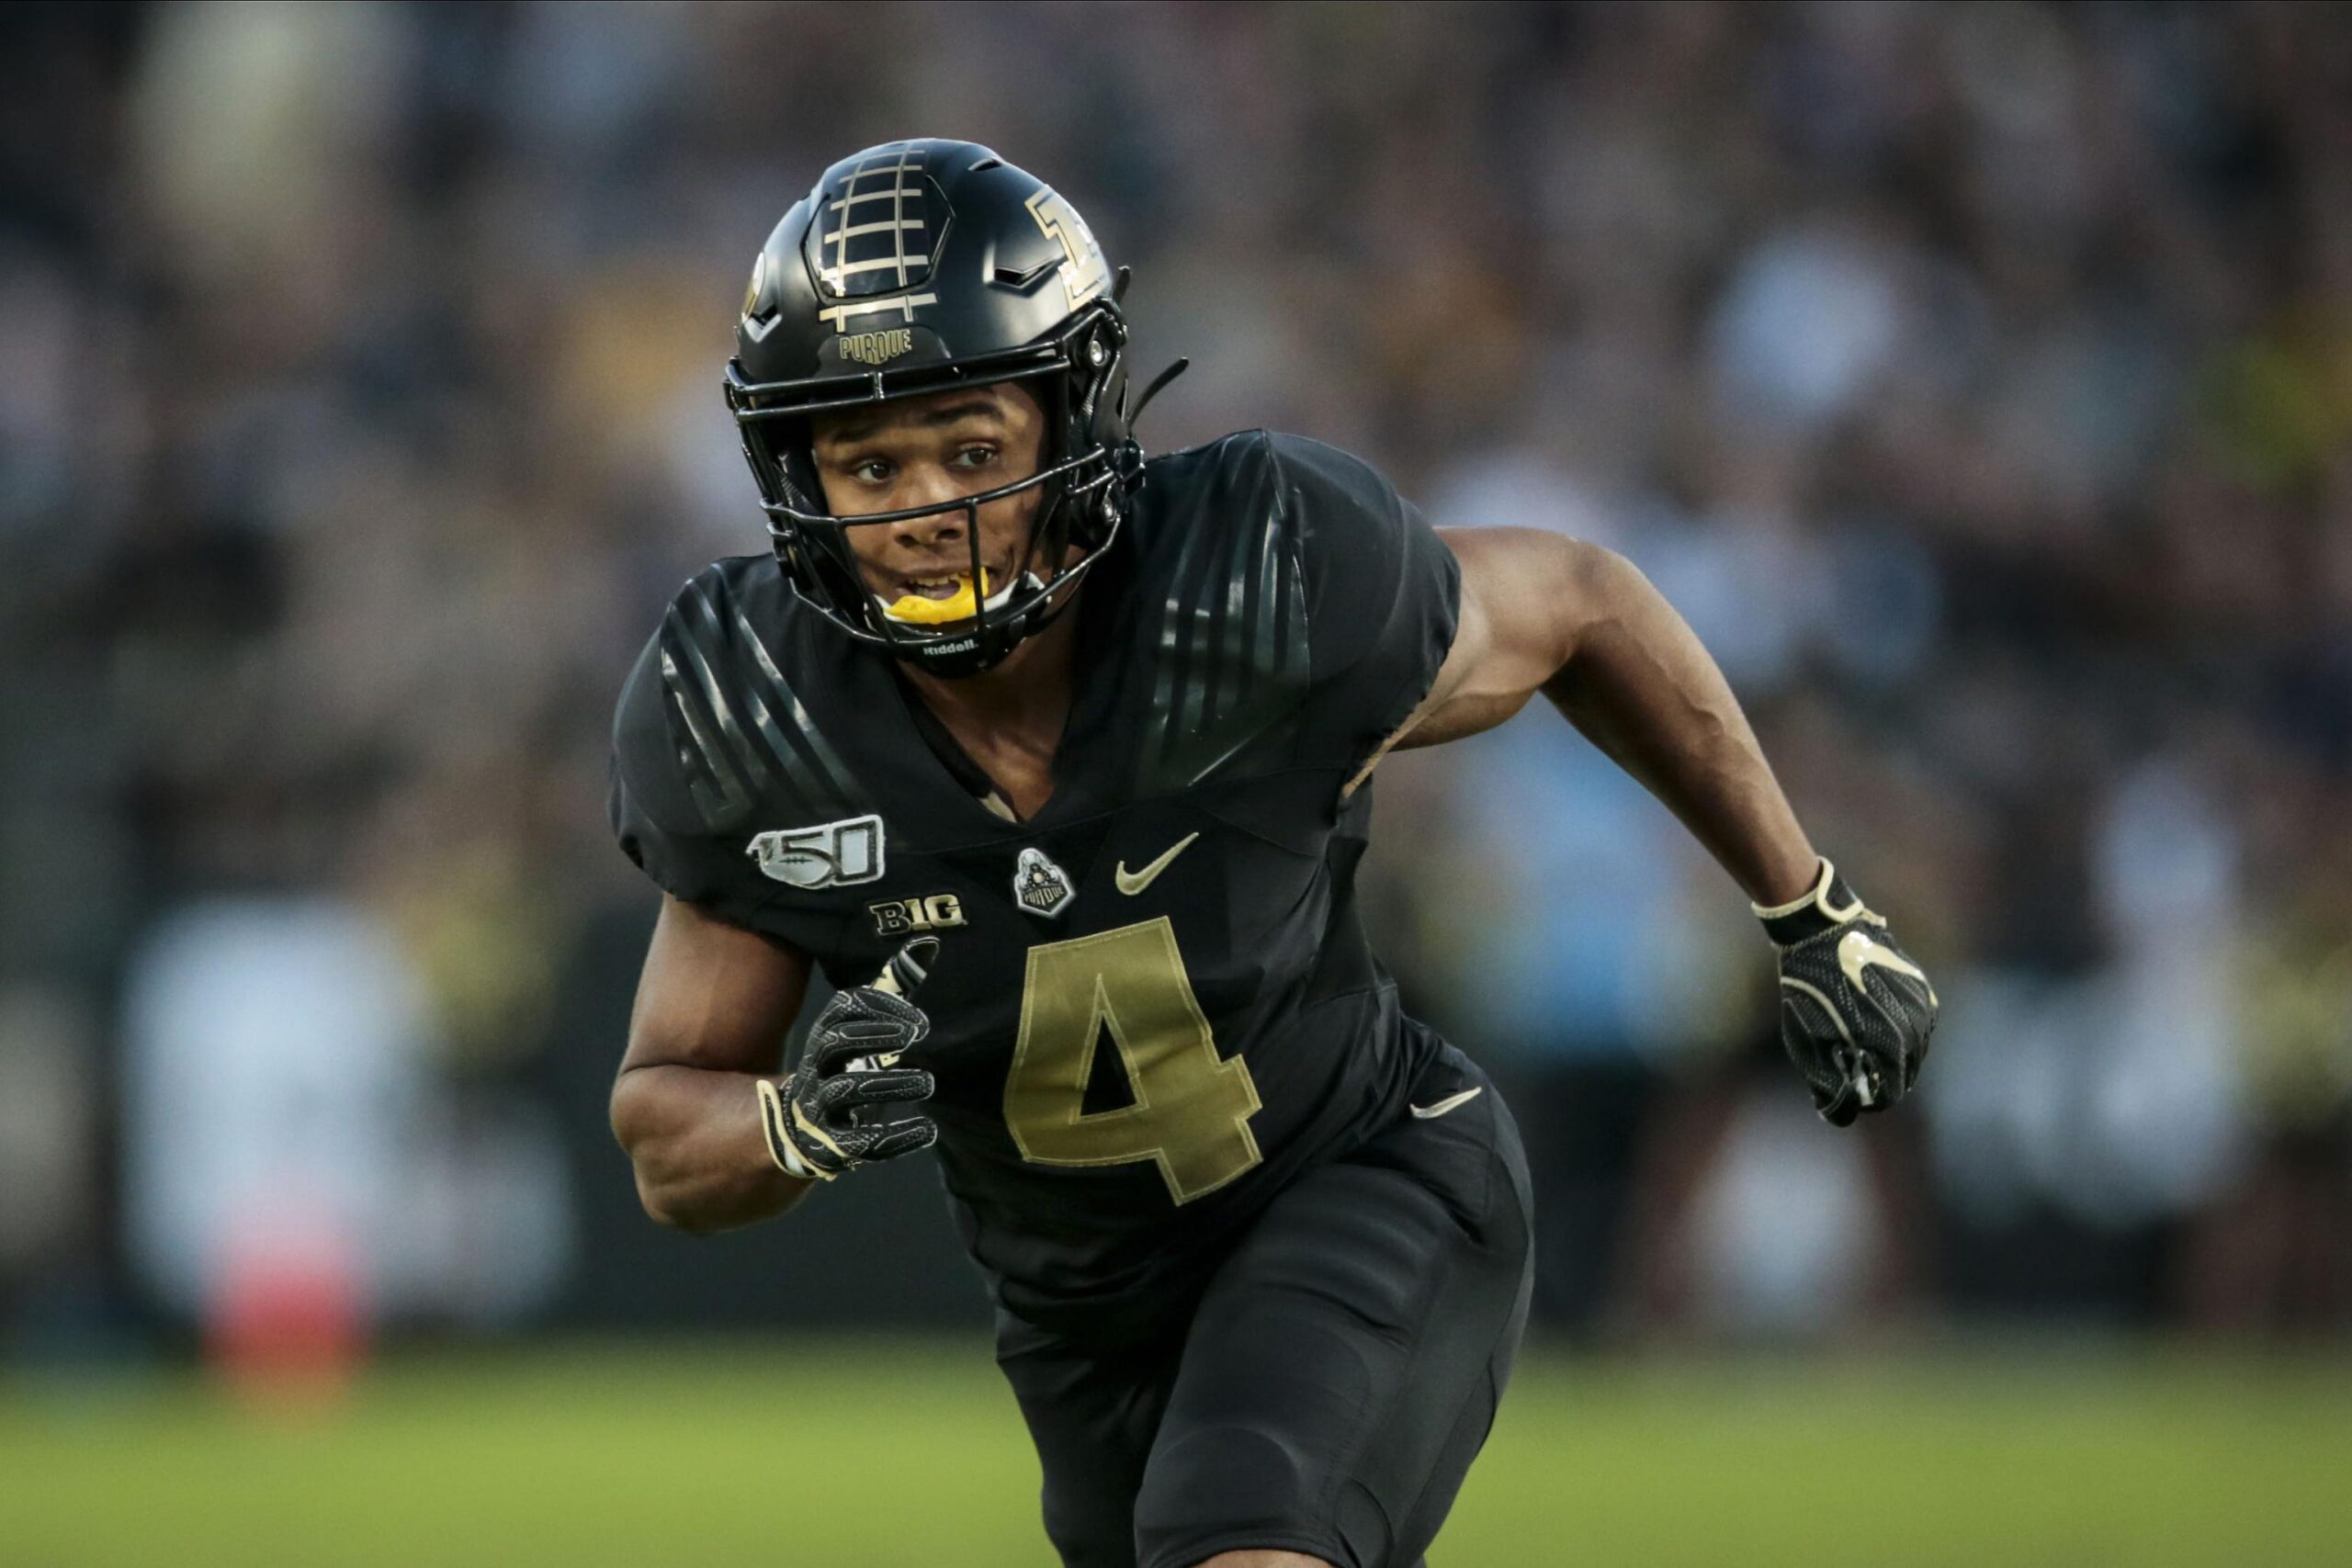 Rondale Moore scouting report